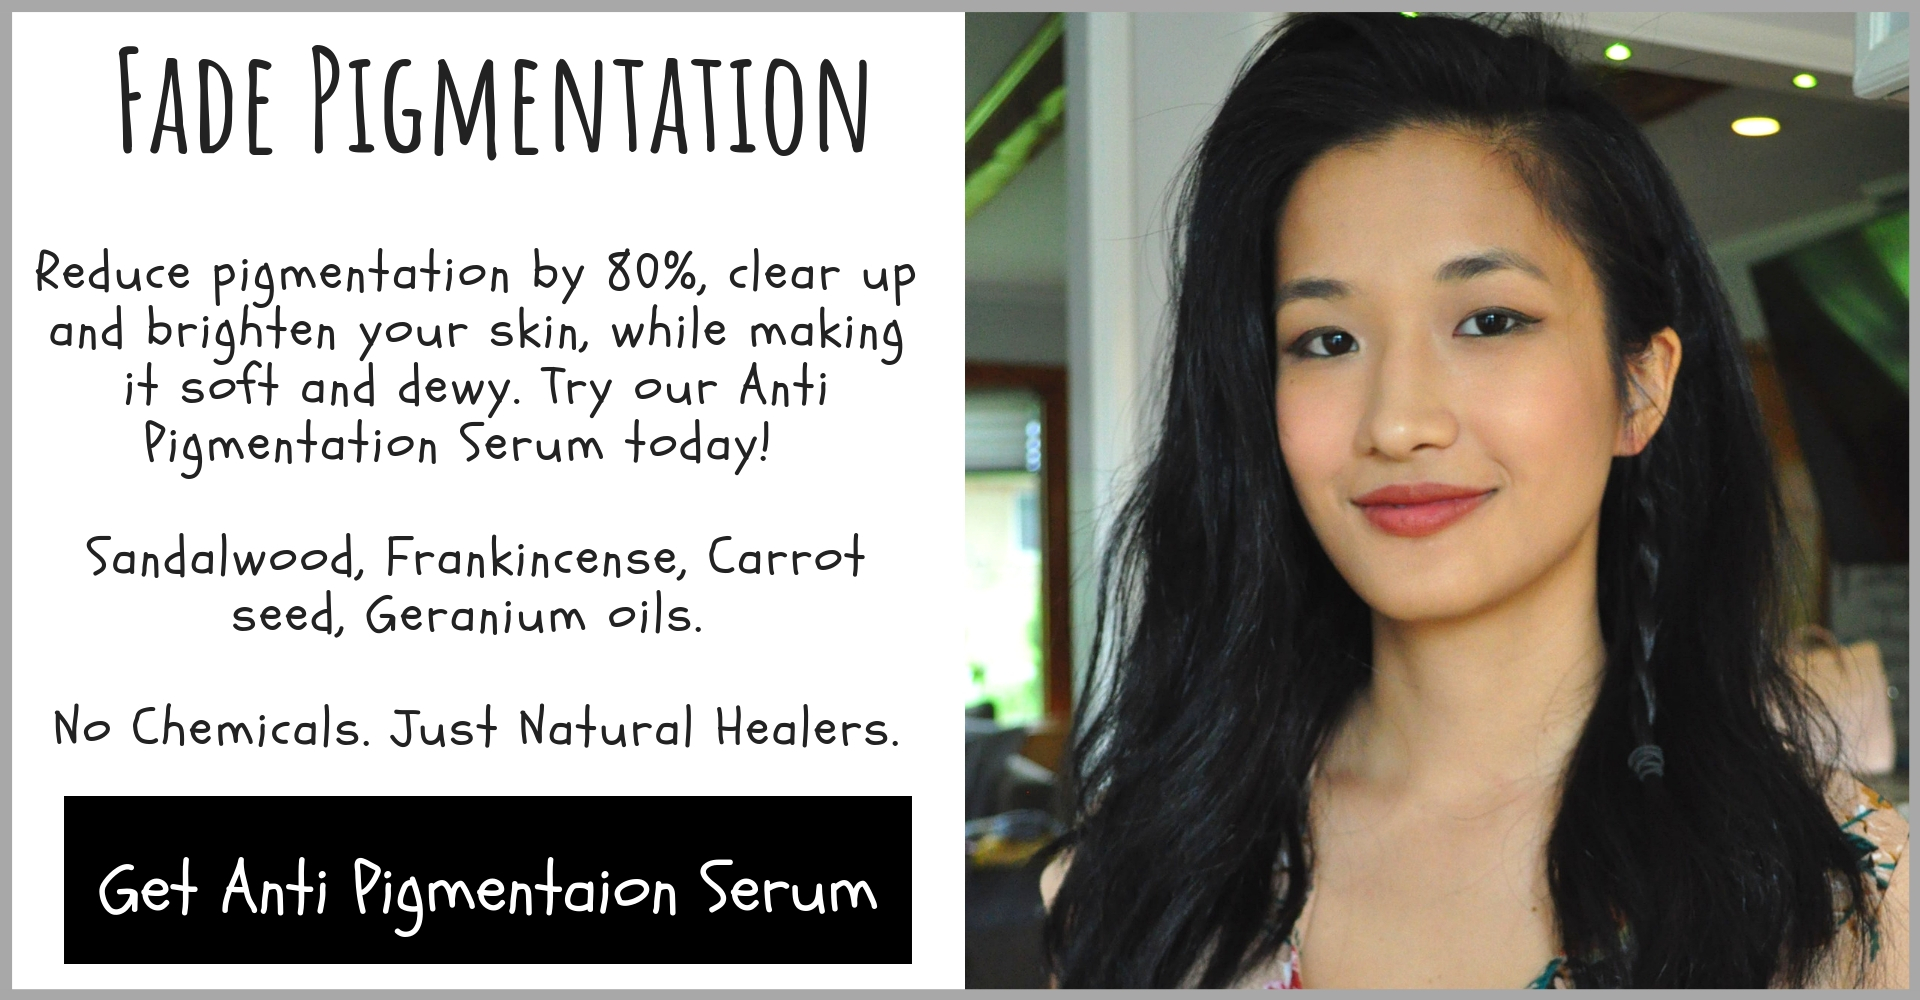 Anti Pigmentation Serum Image